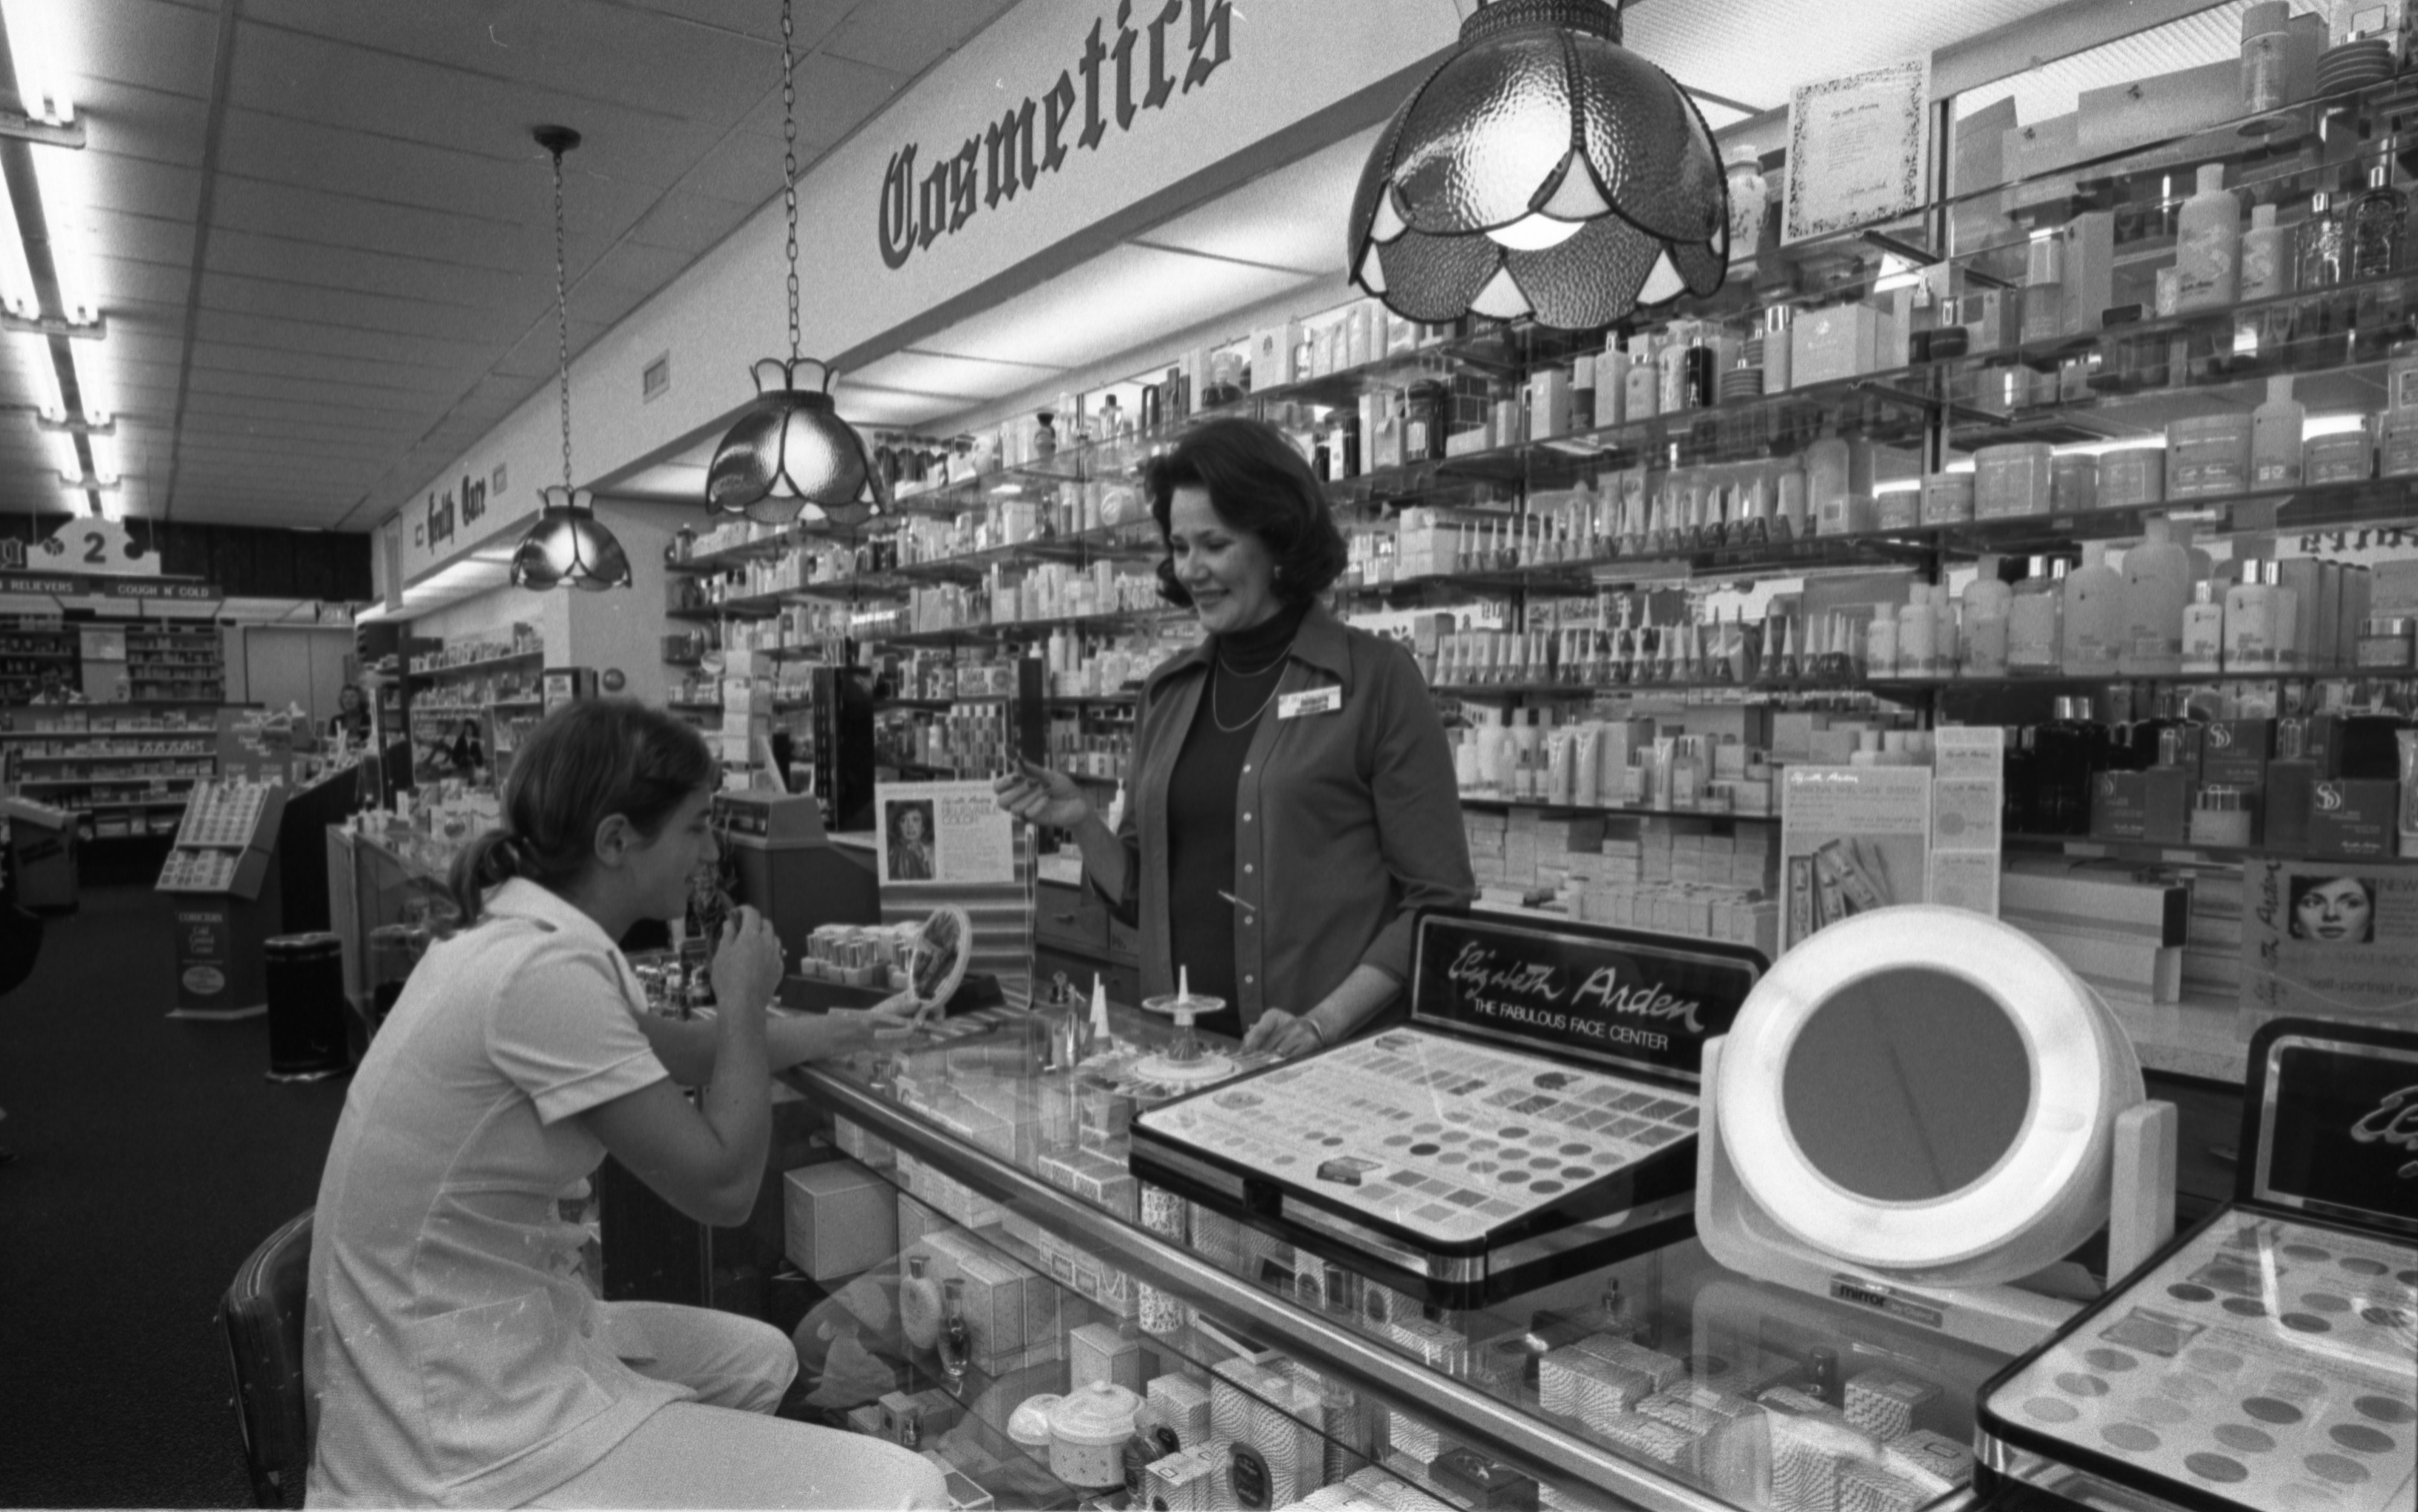 Trying On Makeup At The Cosmetics Counter Inside Richardson's Pharmacy, September 1975 image